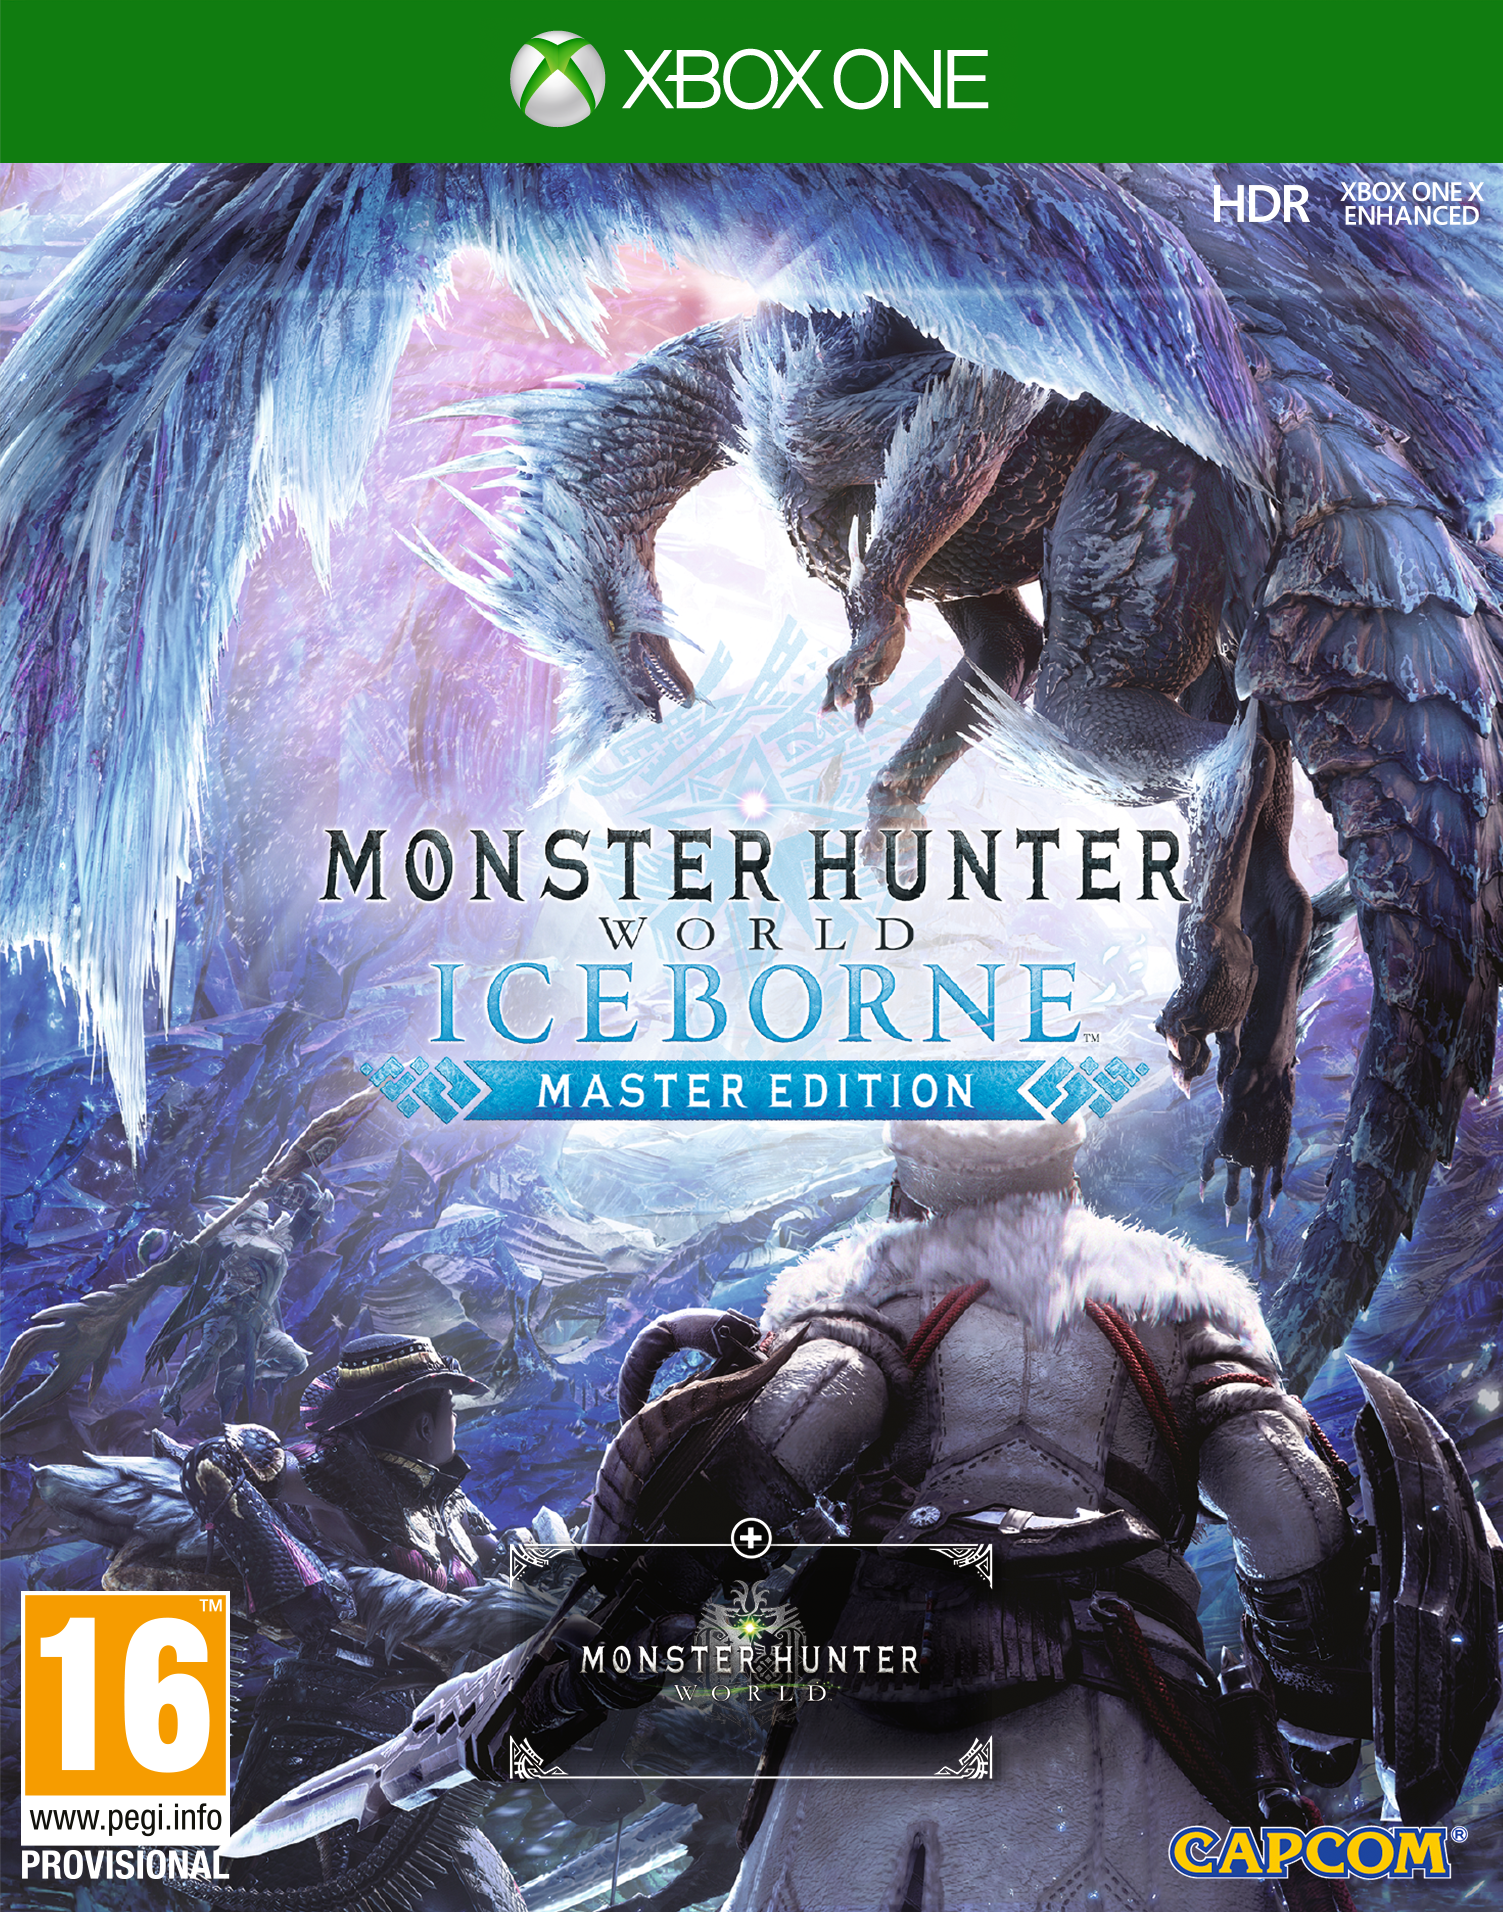 Monster Hunter World Iceborne Master Edition